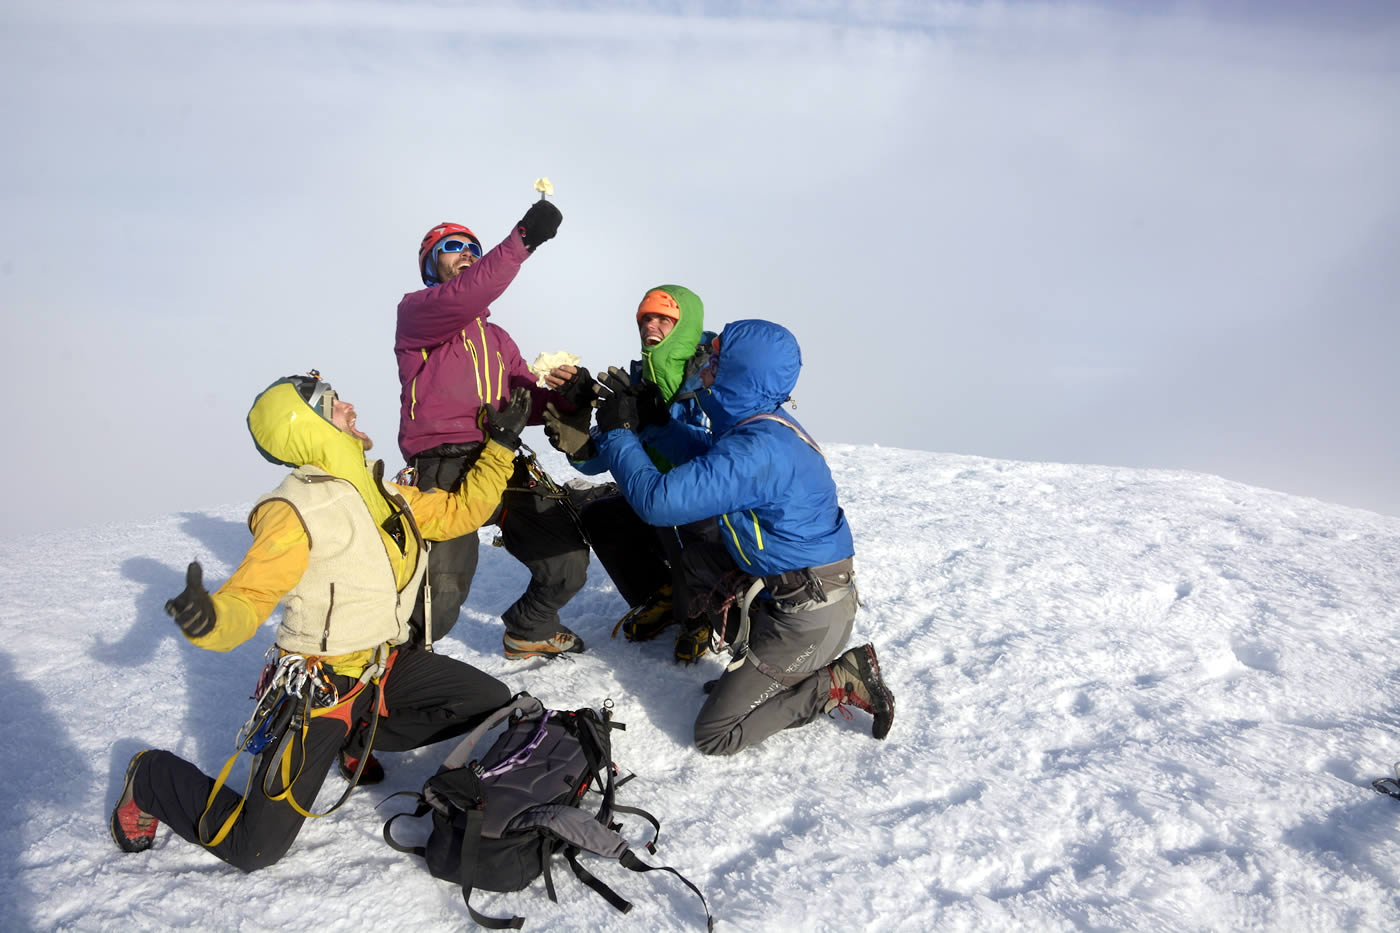 The team kneels on the summit in awe before a piece of Swiss cheese. One of the expedition's sponsors was a Swiss cheese company that provided 25 kilograms of its finest product. Left to right are Antoine Moineville, Fabio Lupo, Christian Ledergerber and Jerome Sullivan. [Photo] Silvan Schuepbach